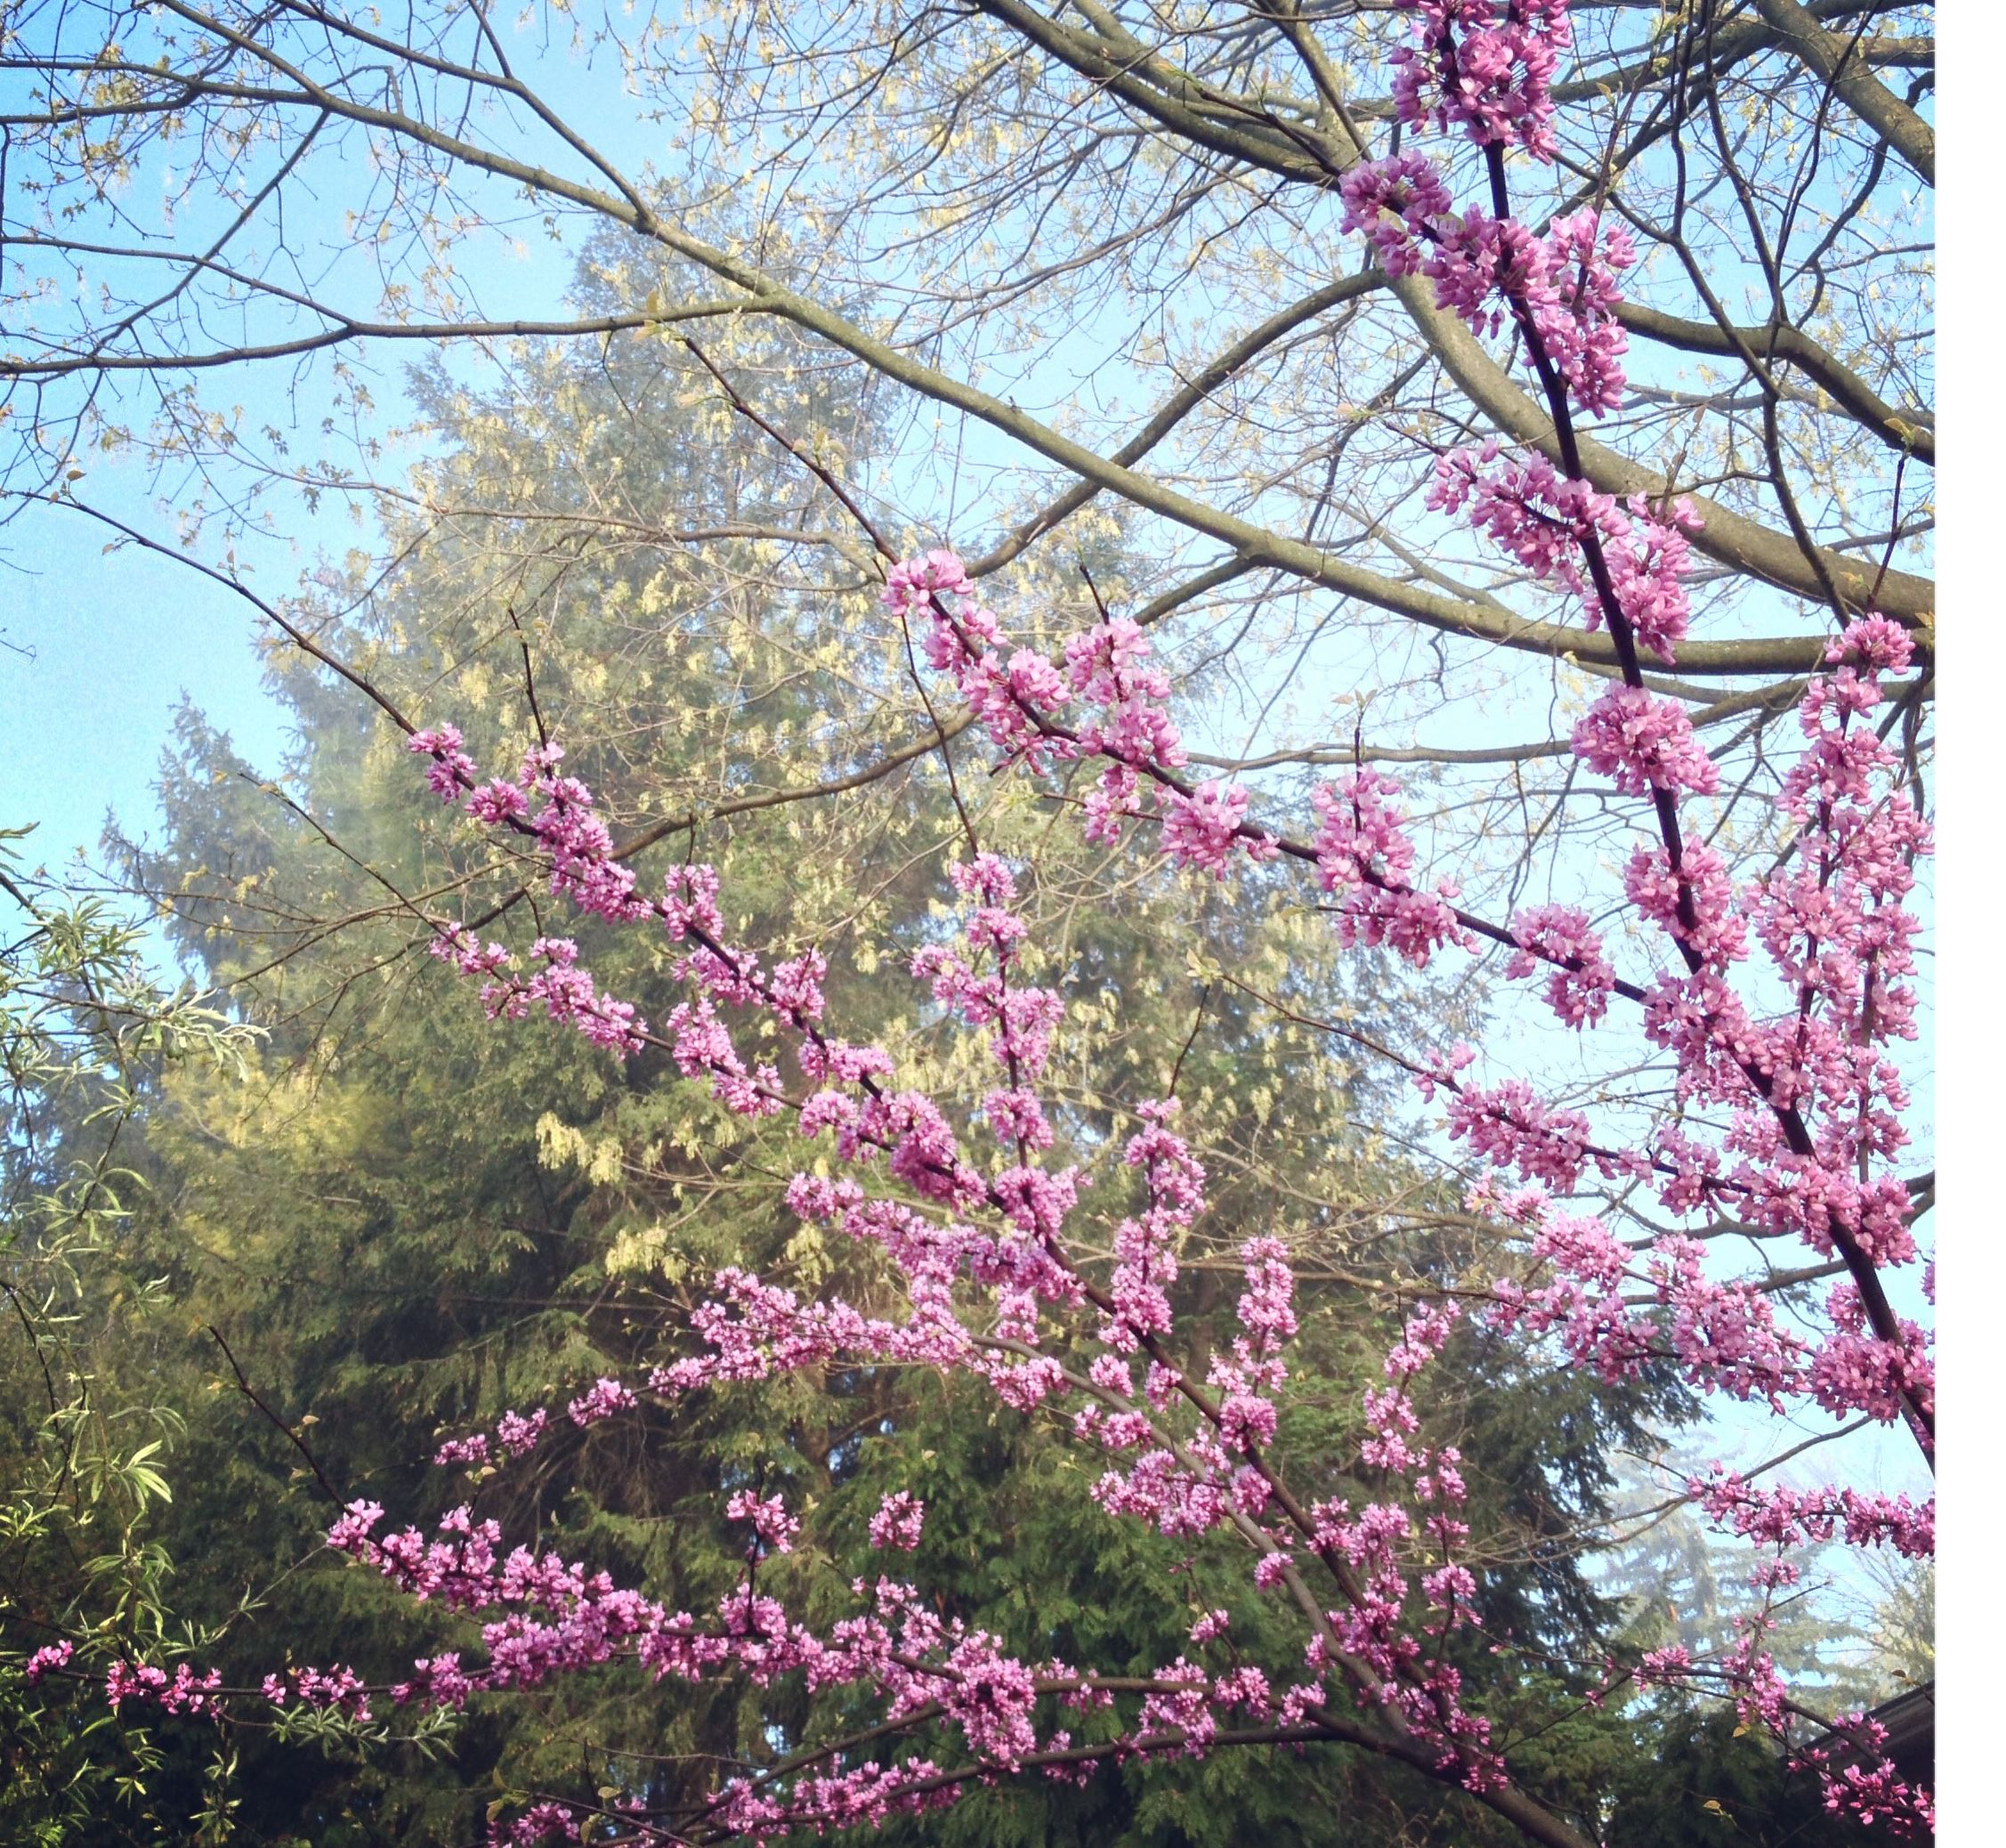 Native Pa Plants: Pennsylvania Native Trees A Great Fit For Local Gardens